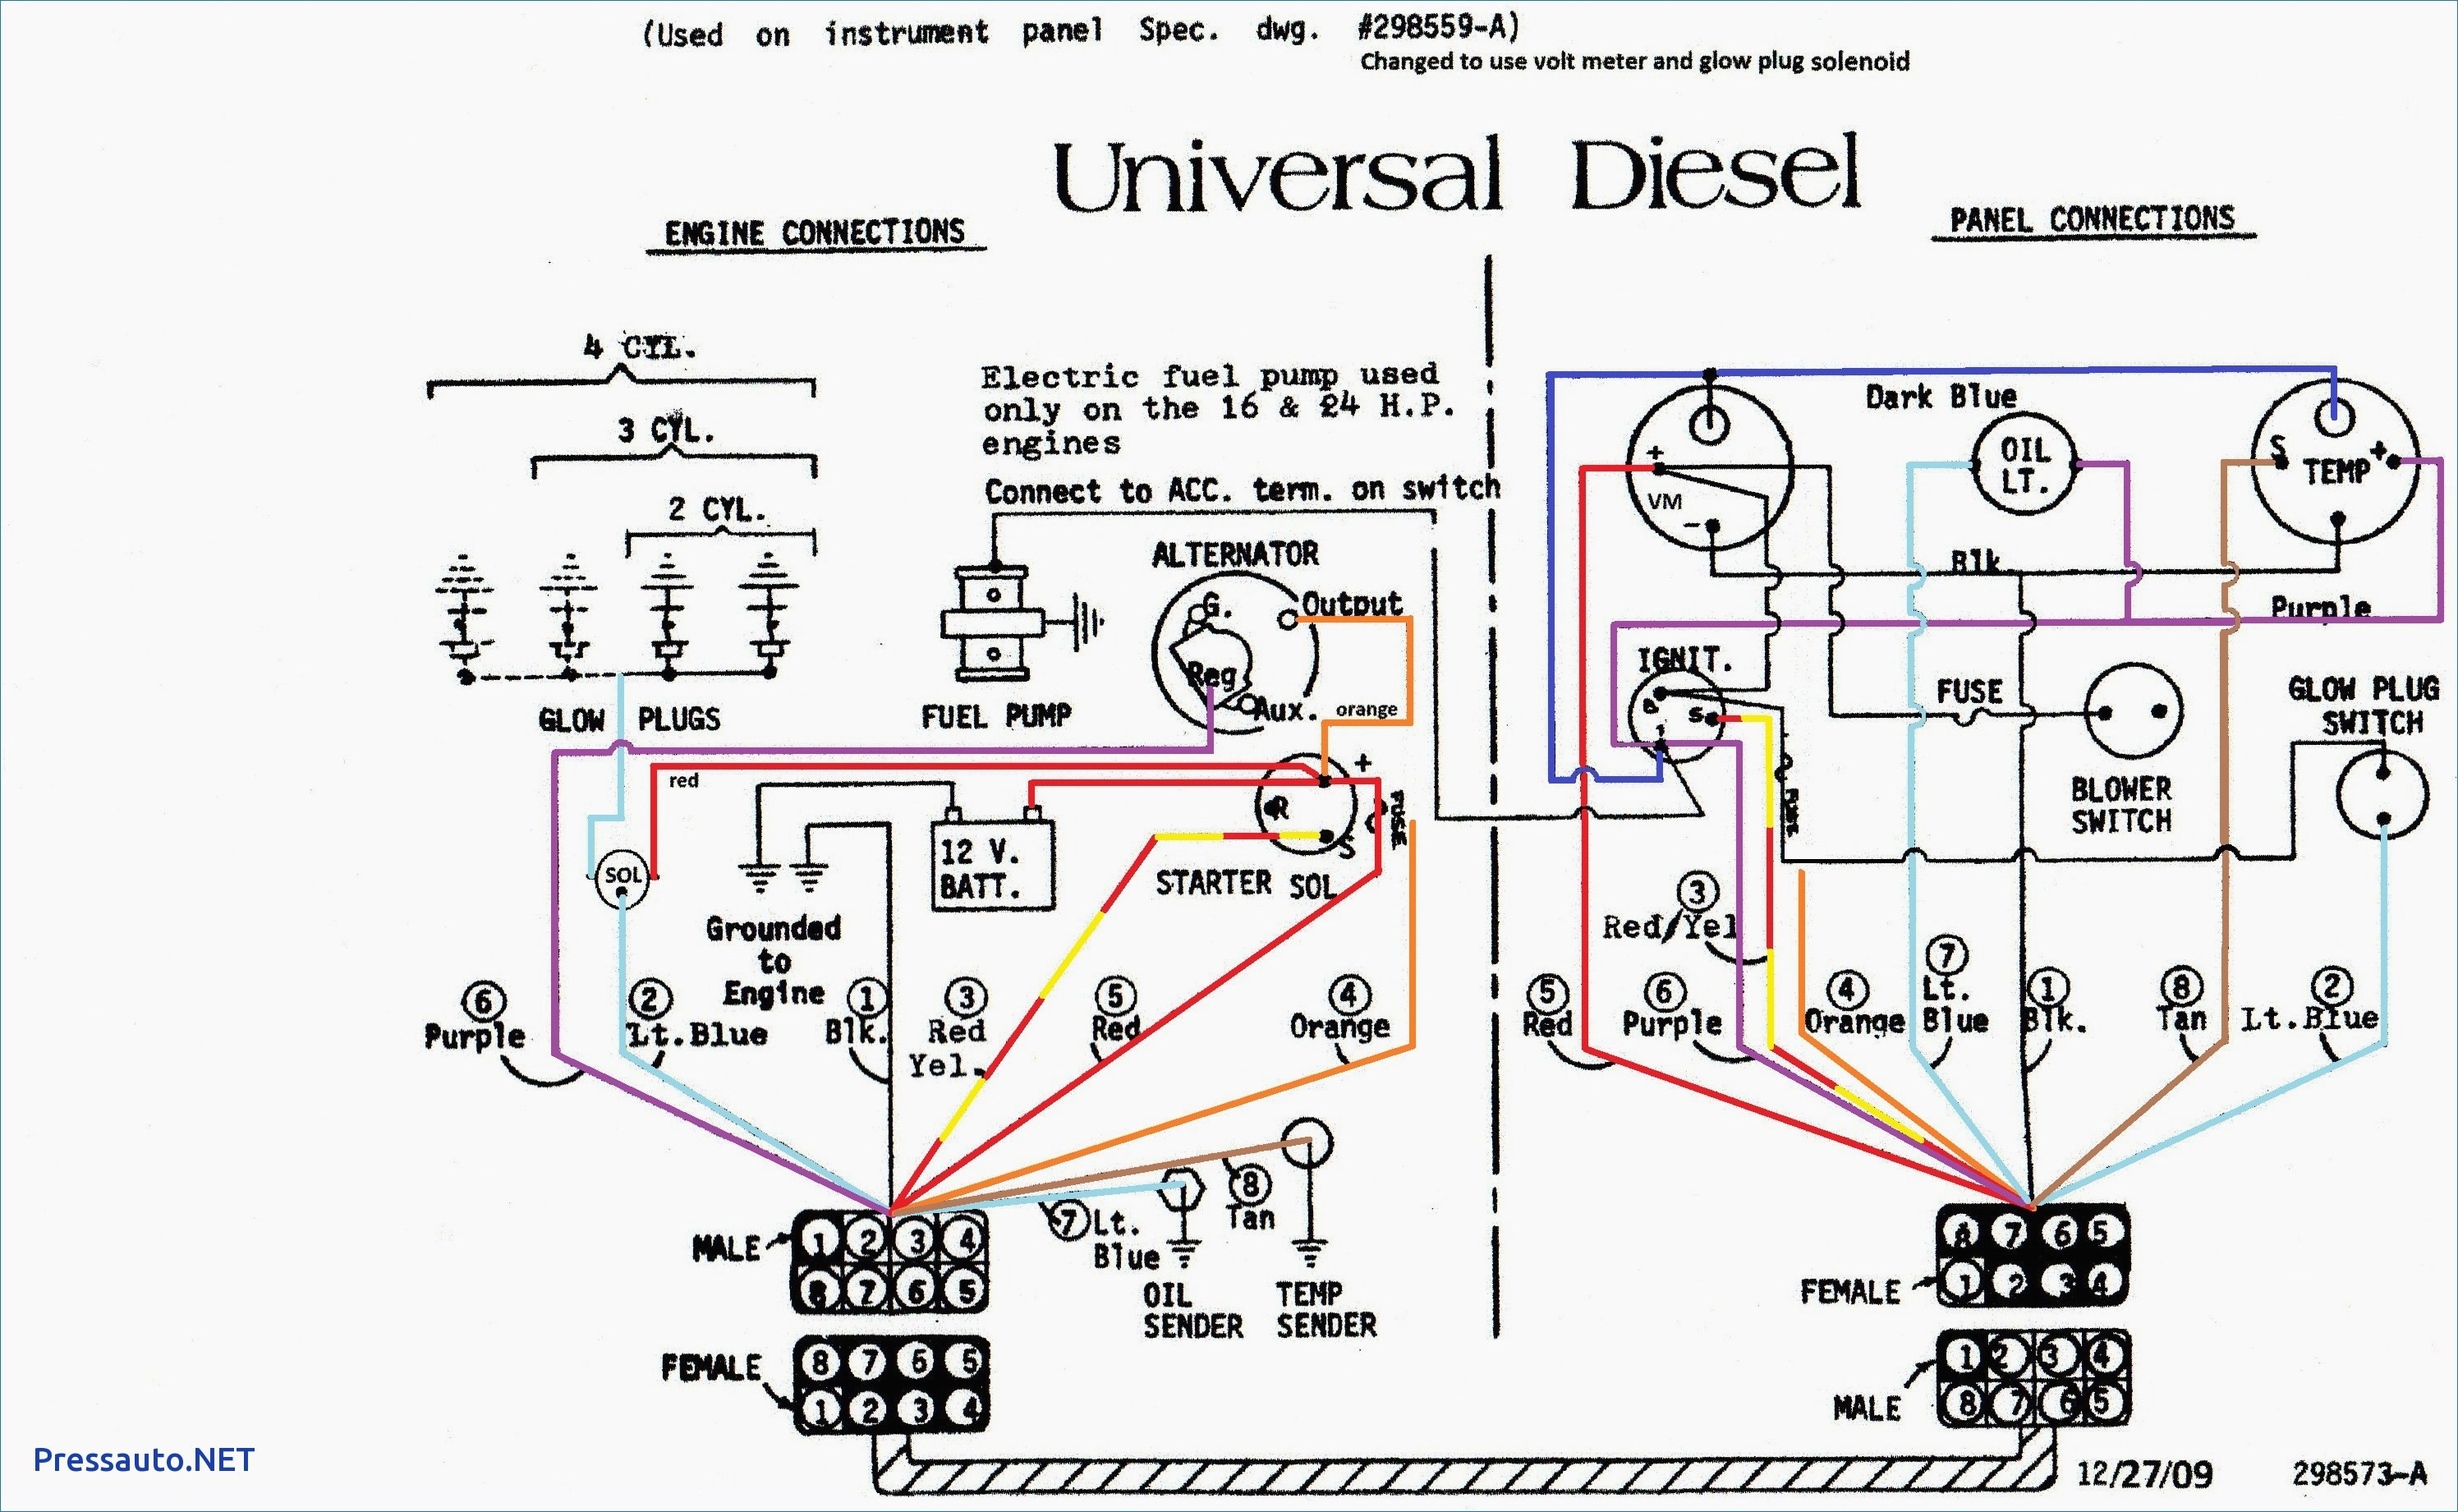 Trailer Wiring Diagram 13 Way | Wiring Diagram - Vw Amarok Trailer Wiring Diagram